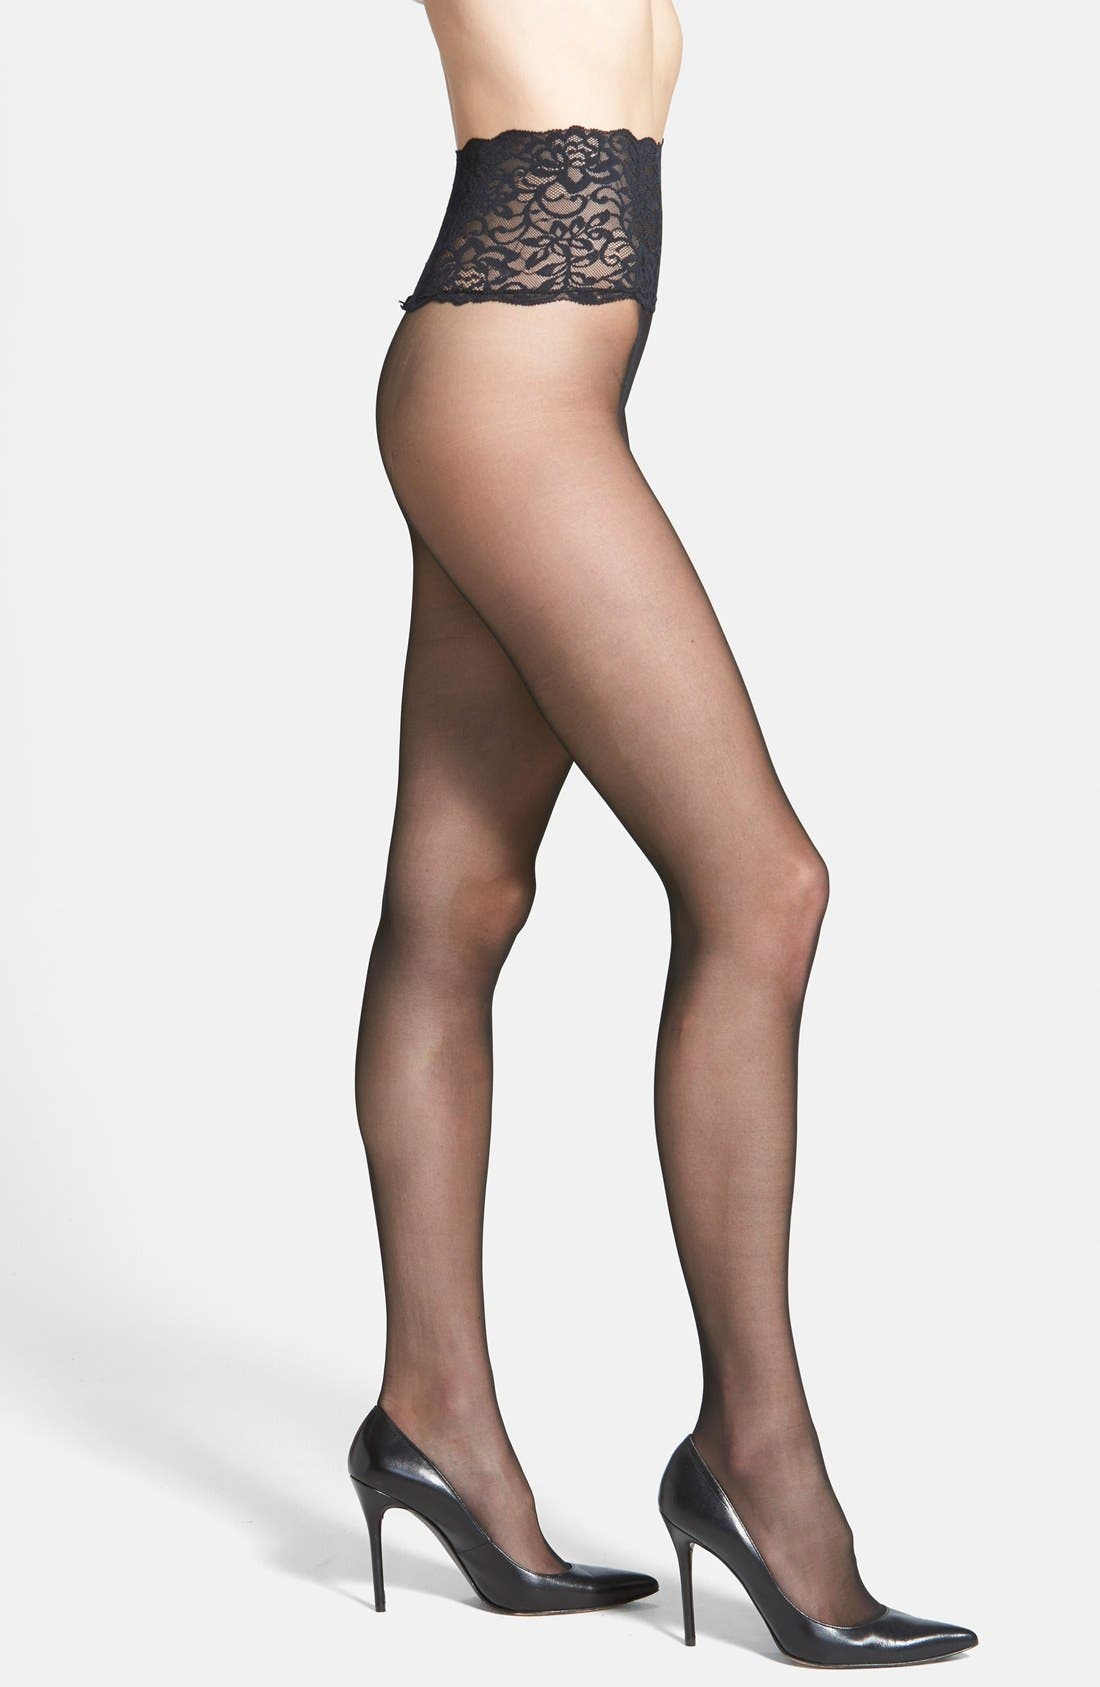 The Sexy Seamless Sheer Hosiery in Black